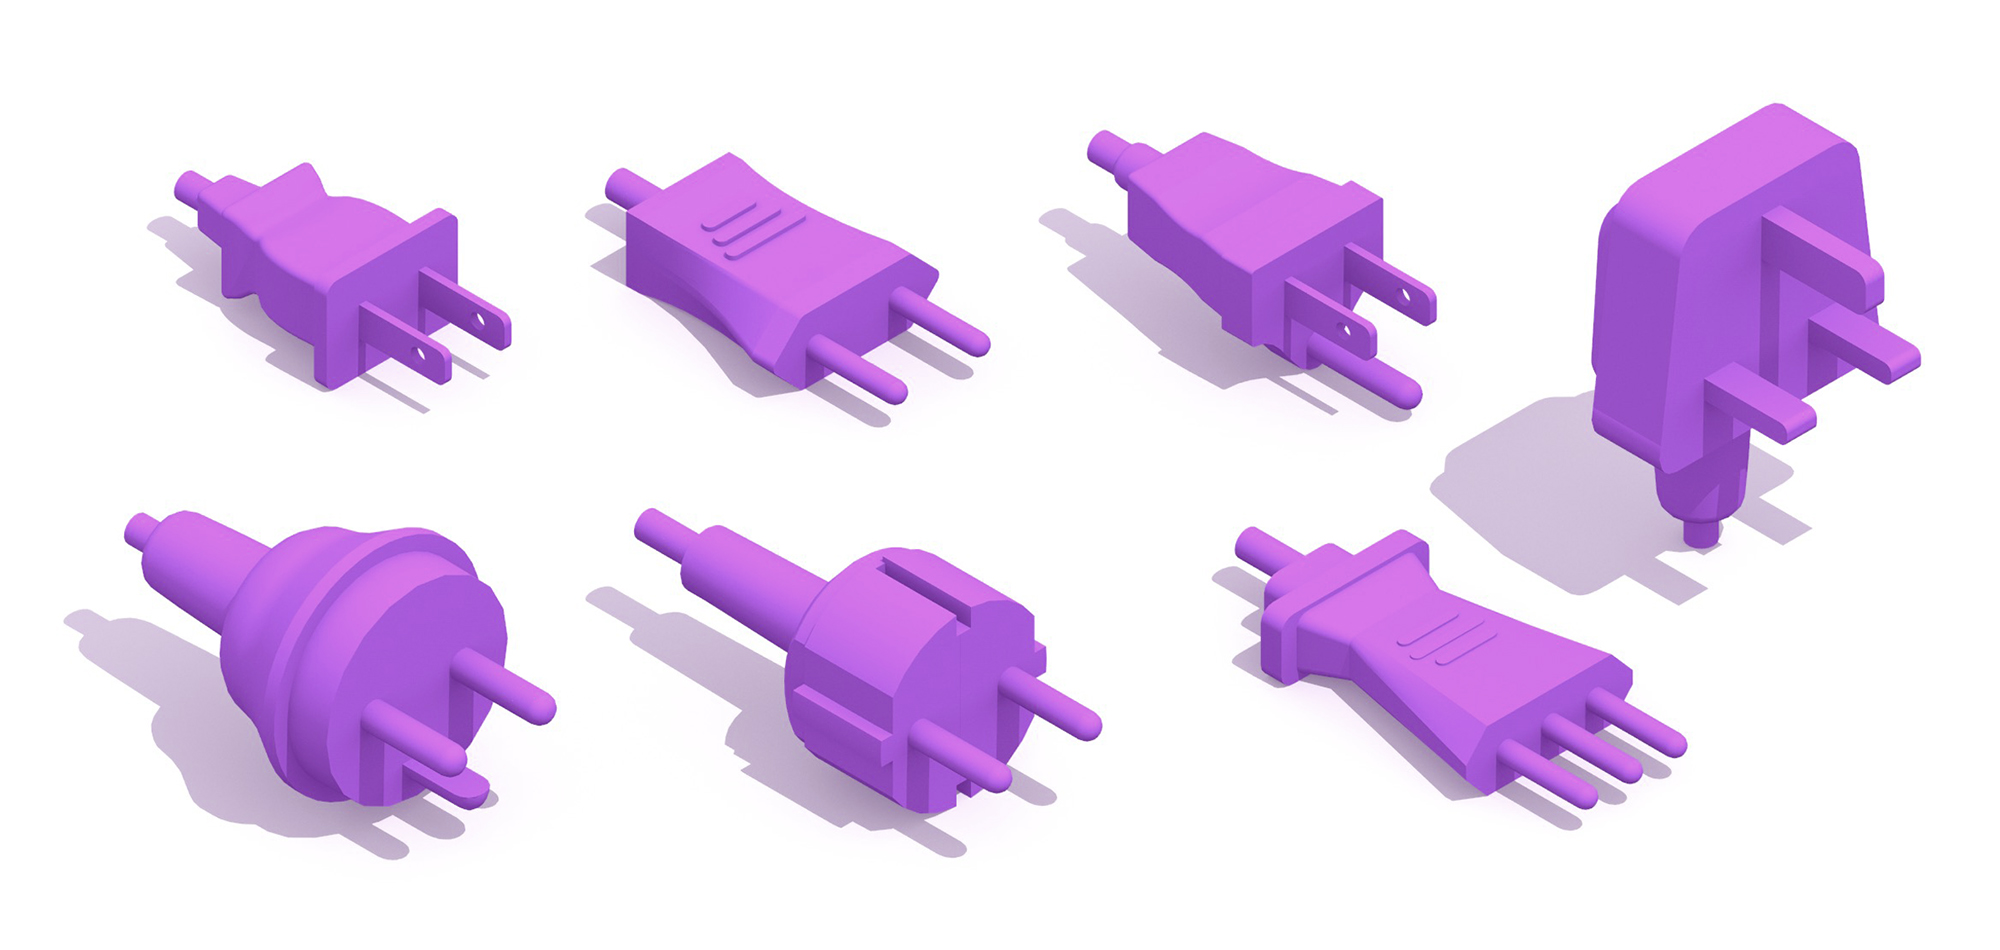 Collection of different Electrical Plugs and Sockets showing their unique pin configurations, sizes and functions in 3D